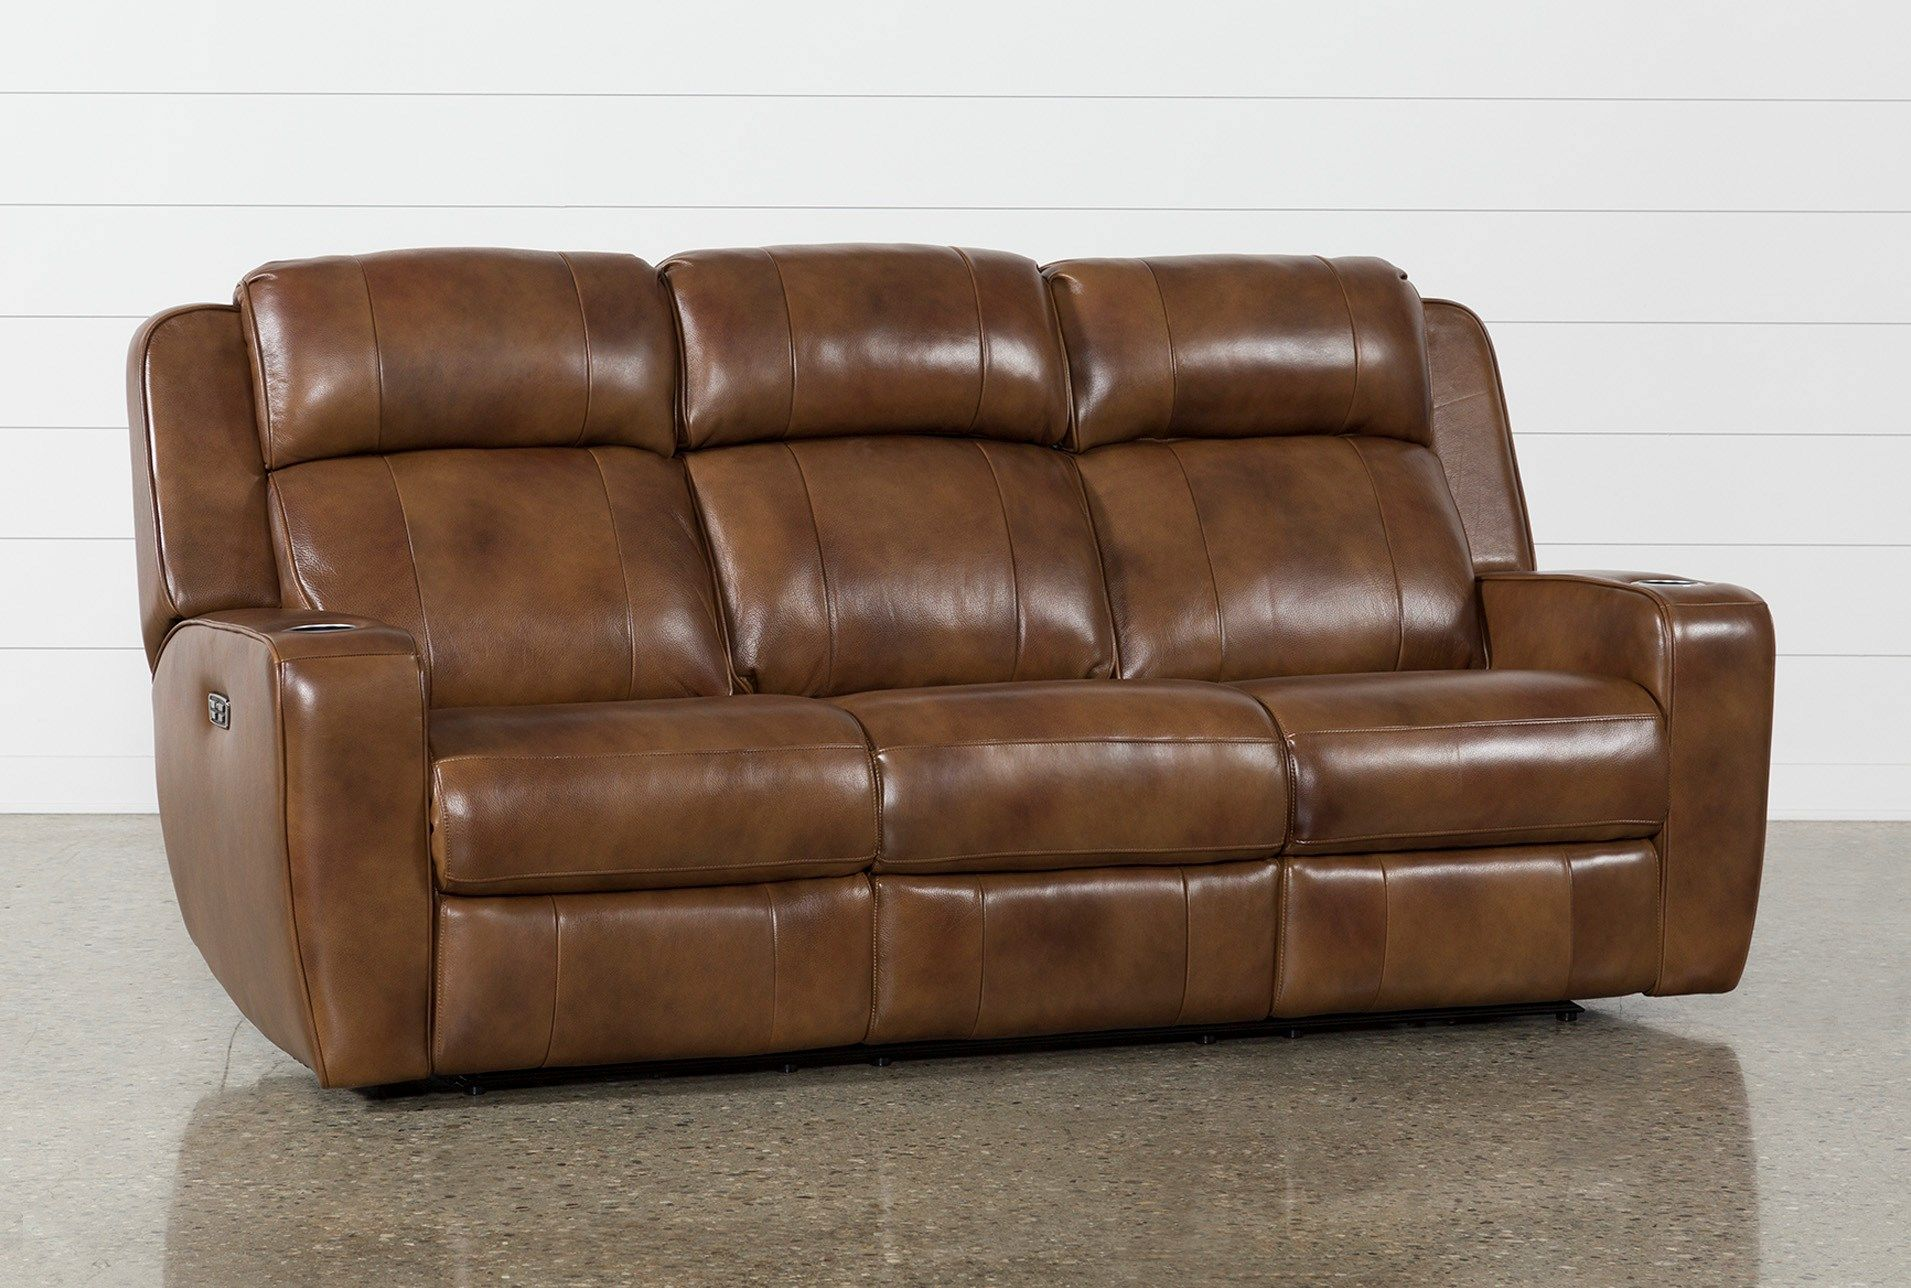 Phelps Leather 87 Power Reclining Sofa With Power Headrest Usb Reclining Sofa Power Reclining Sofa Leather Reclining Sofa